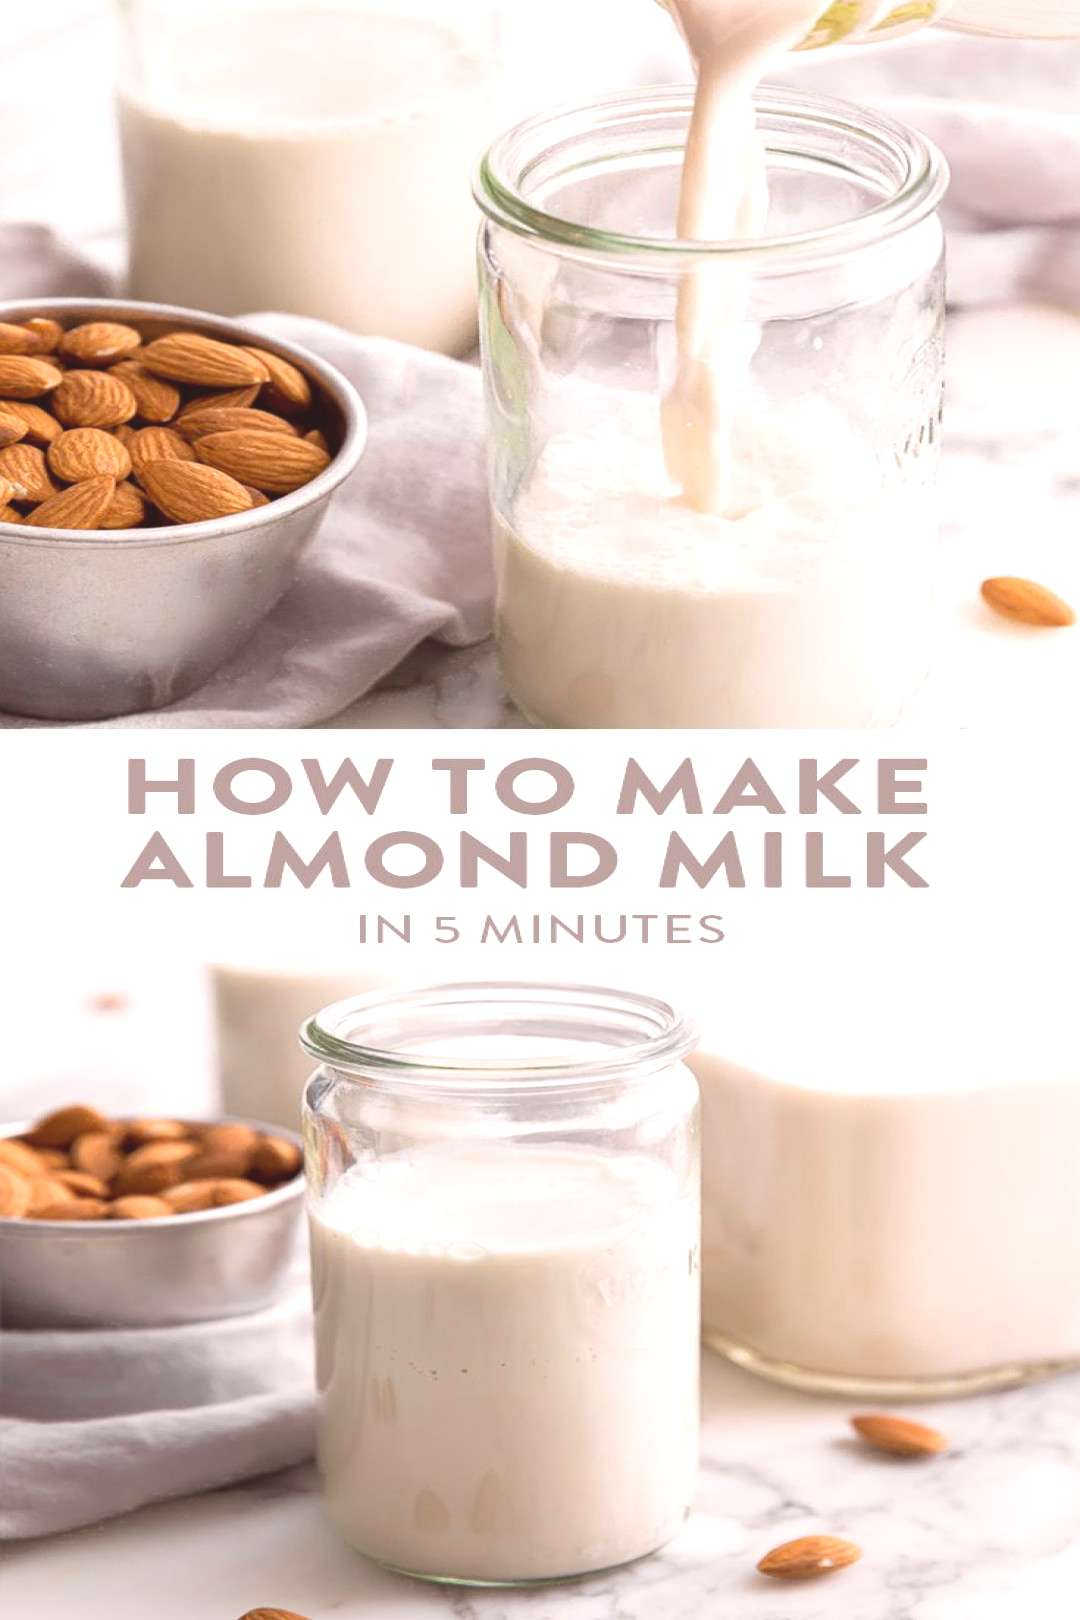 Want to learn how to make almond milk? You only need 5 minutes, a couple ingredients, and a high sp